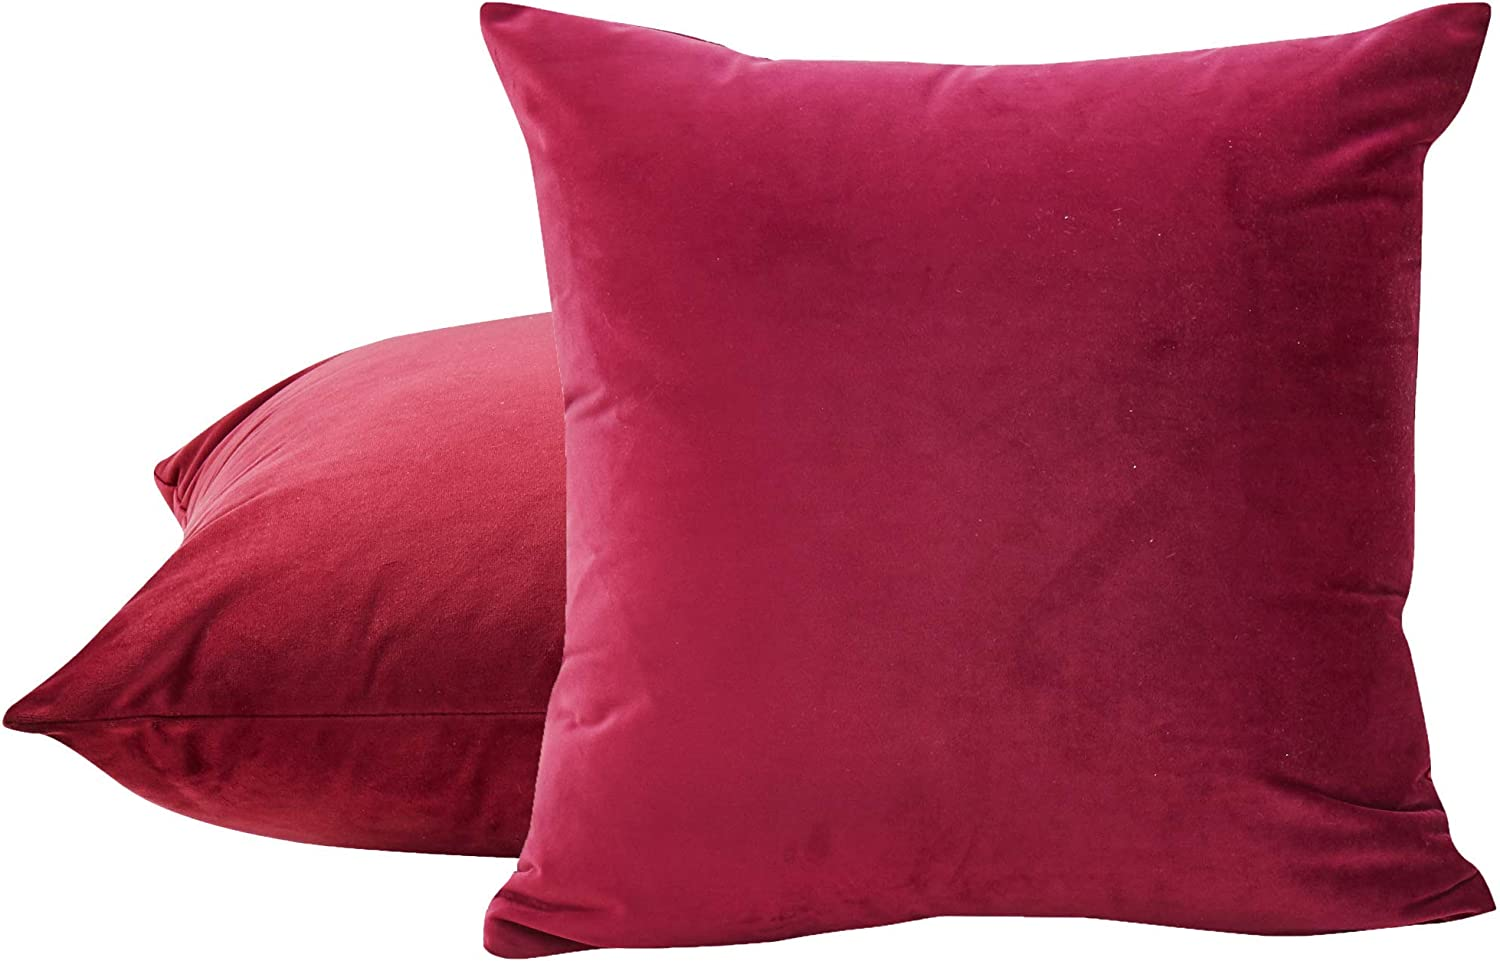 Amazon Com Sleep Mantra Decorative Couch Cushion Cover 2 Piece Set Solid Wine Smooth Velvet Throw Pillow Covers For Home Decor 20x20 Inch Cushion Cases For Bedroom Sofa Car Home Kitchen